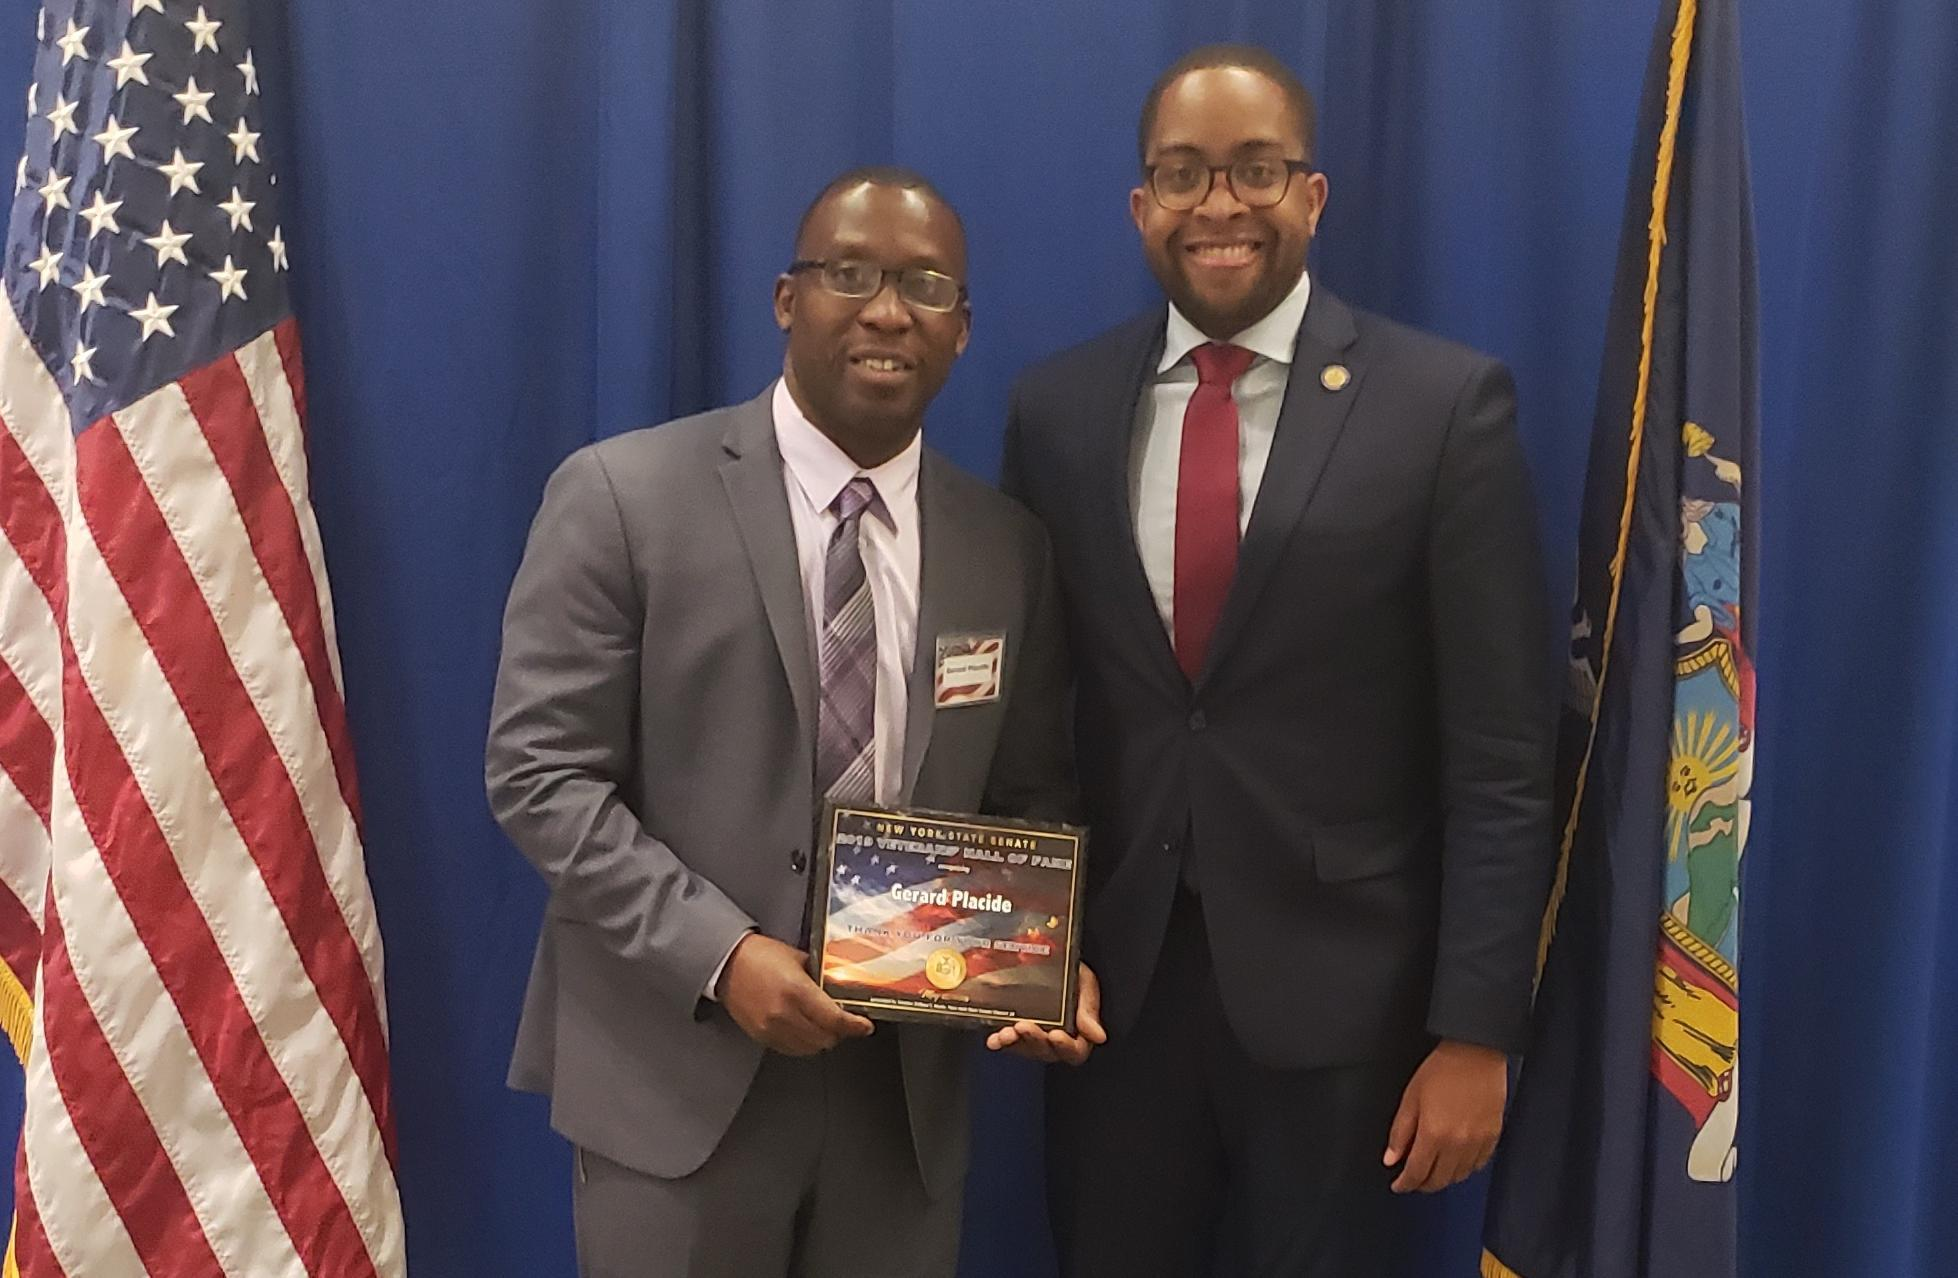 Gerard Placide with Senator Zellnor Myrie at the New York State Senate.